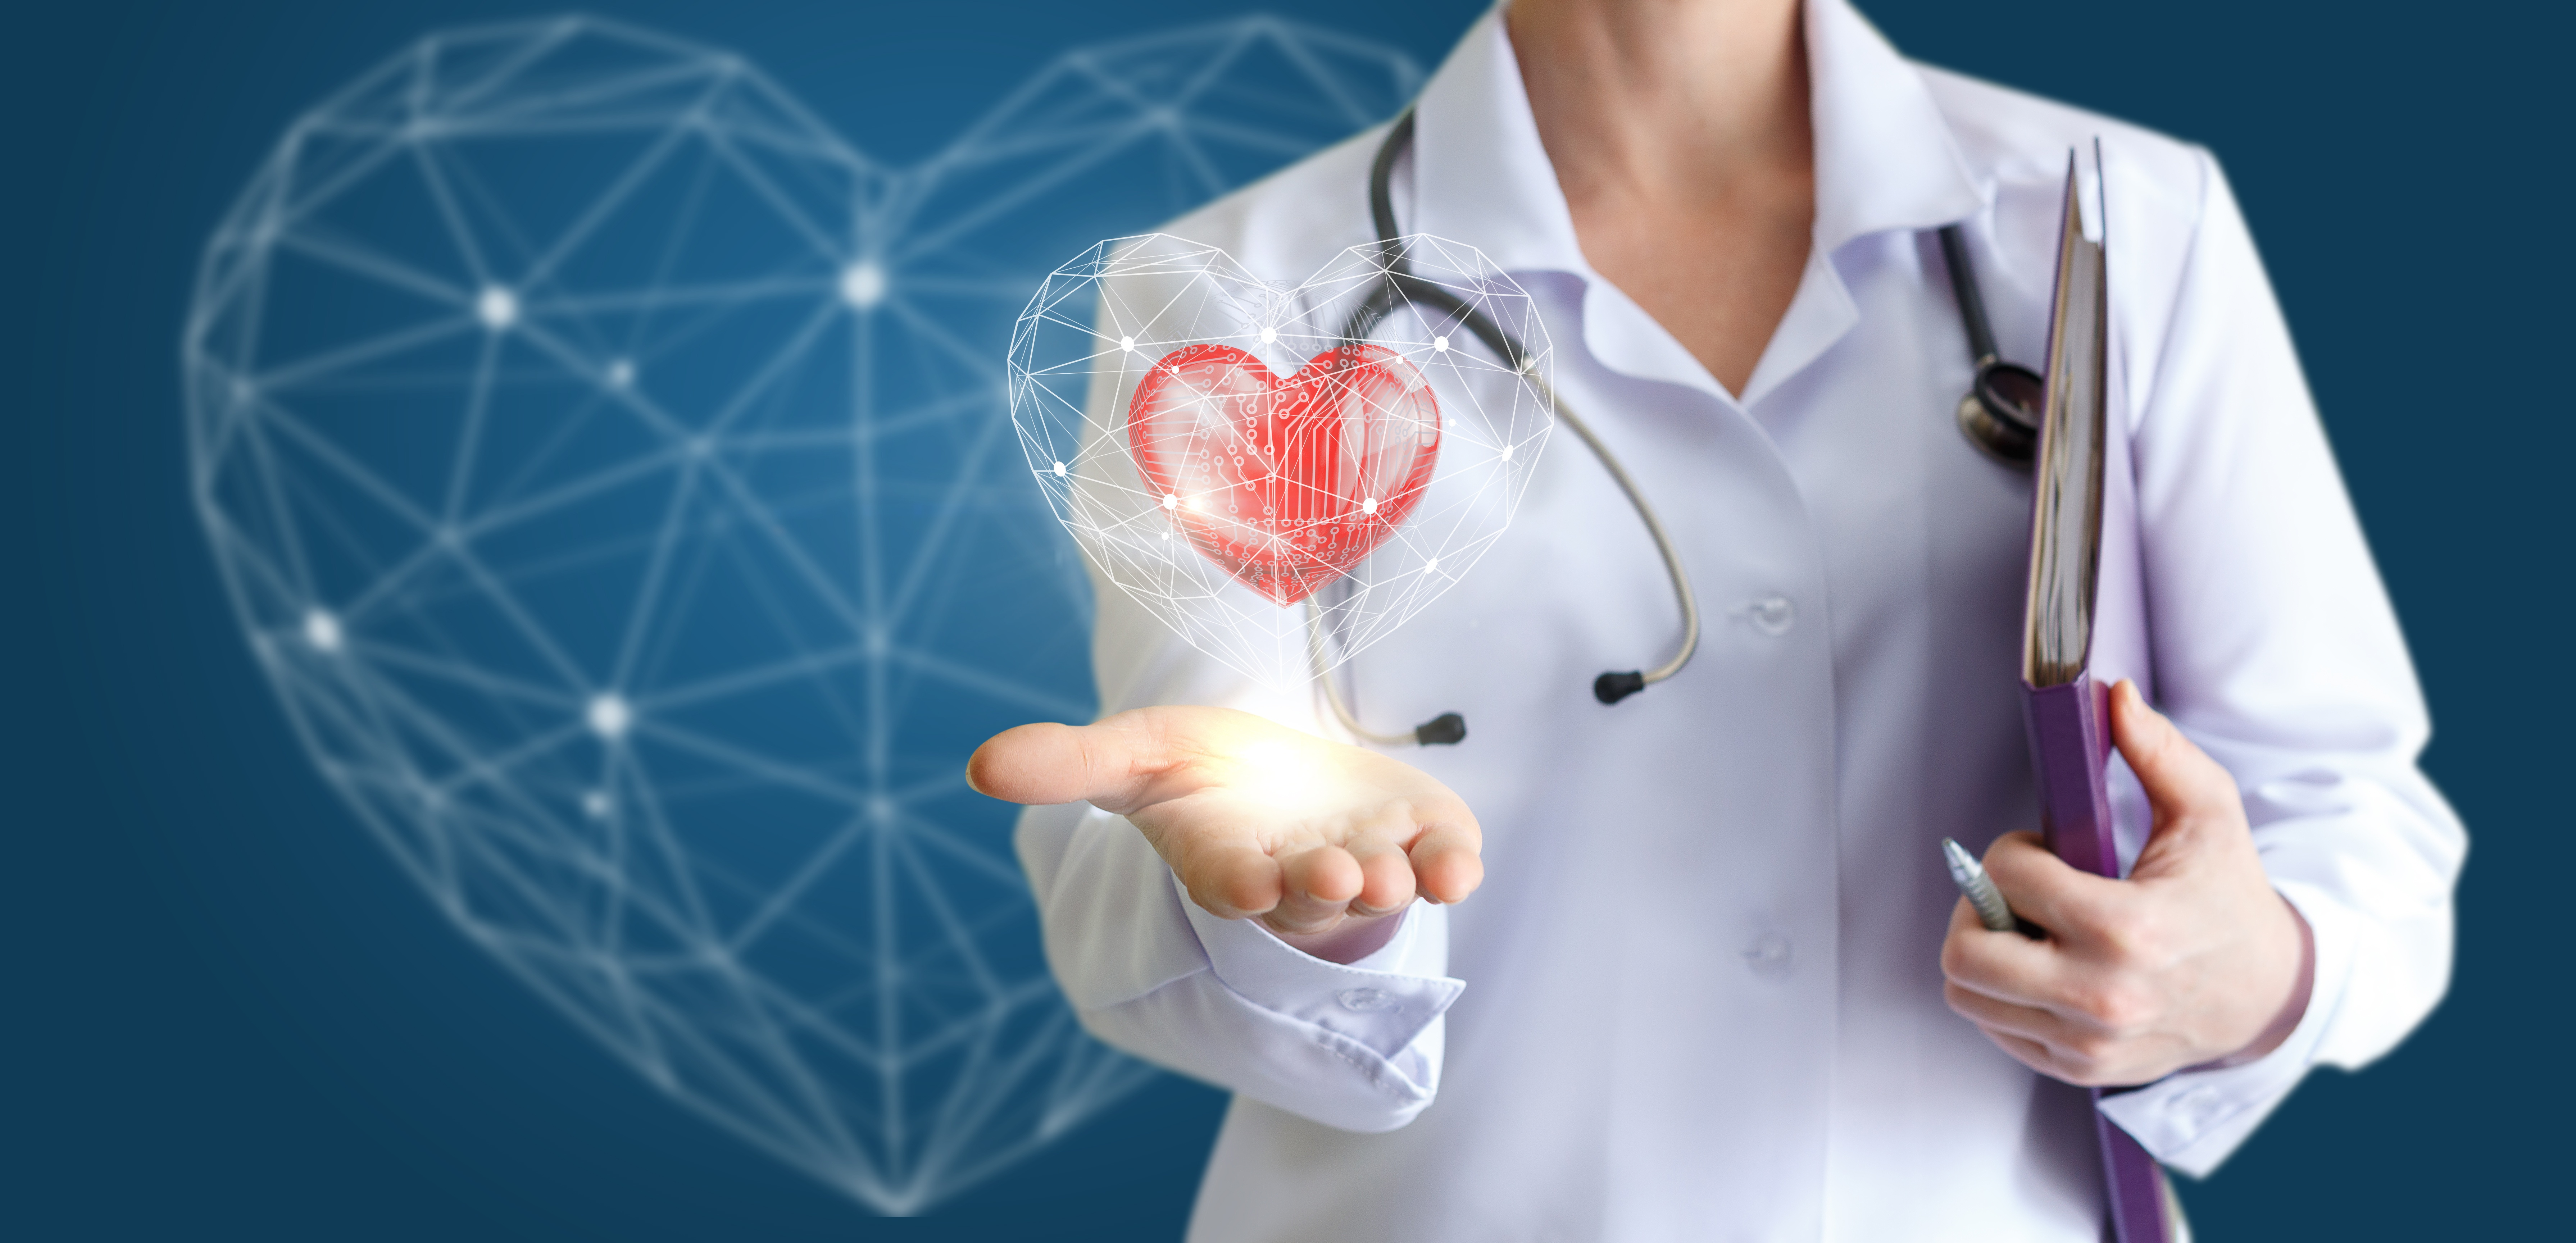 CMS Delays Cardiac Bundles, But Now is The Time To Plan